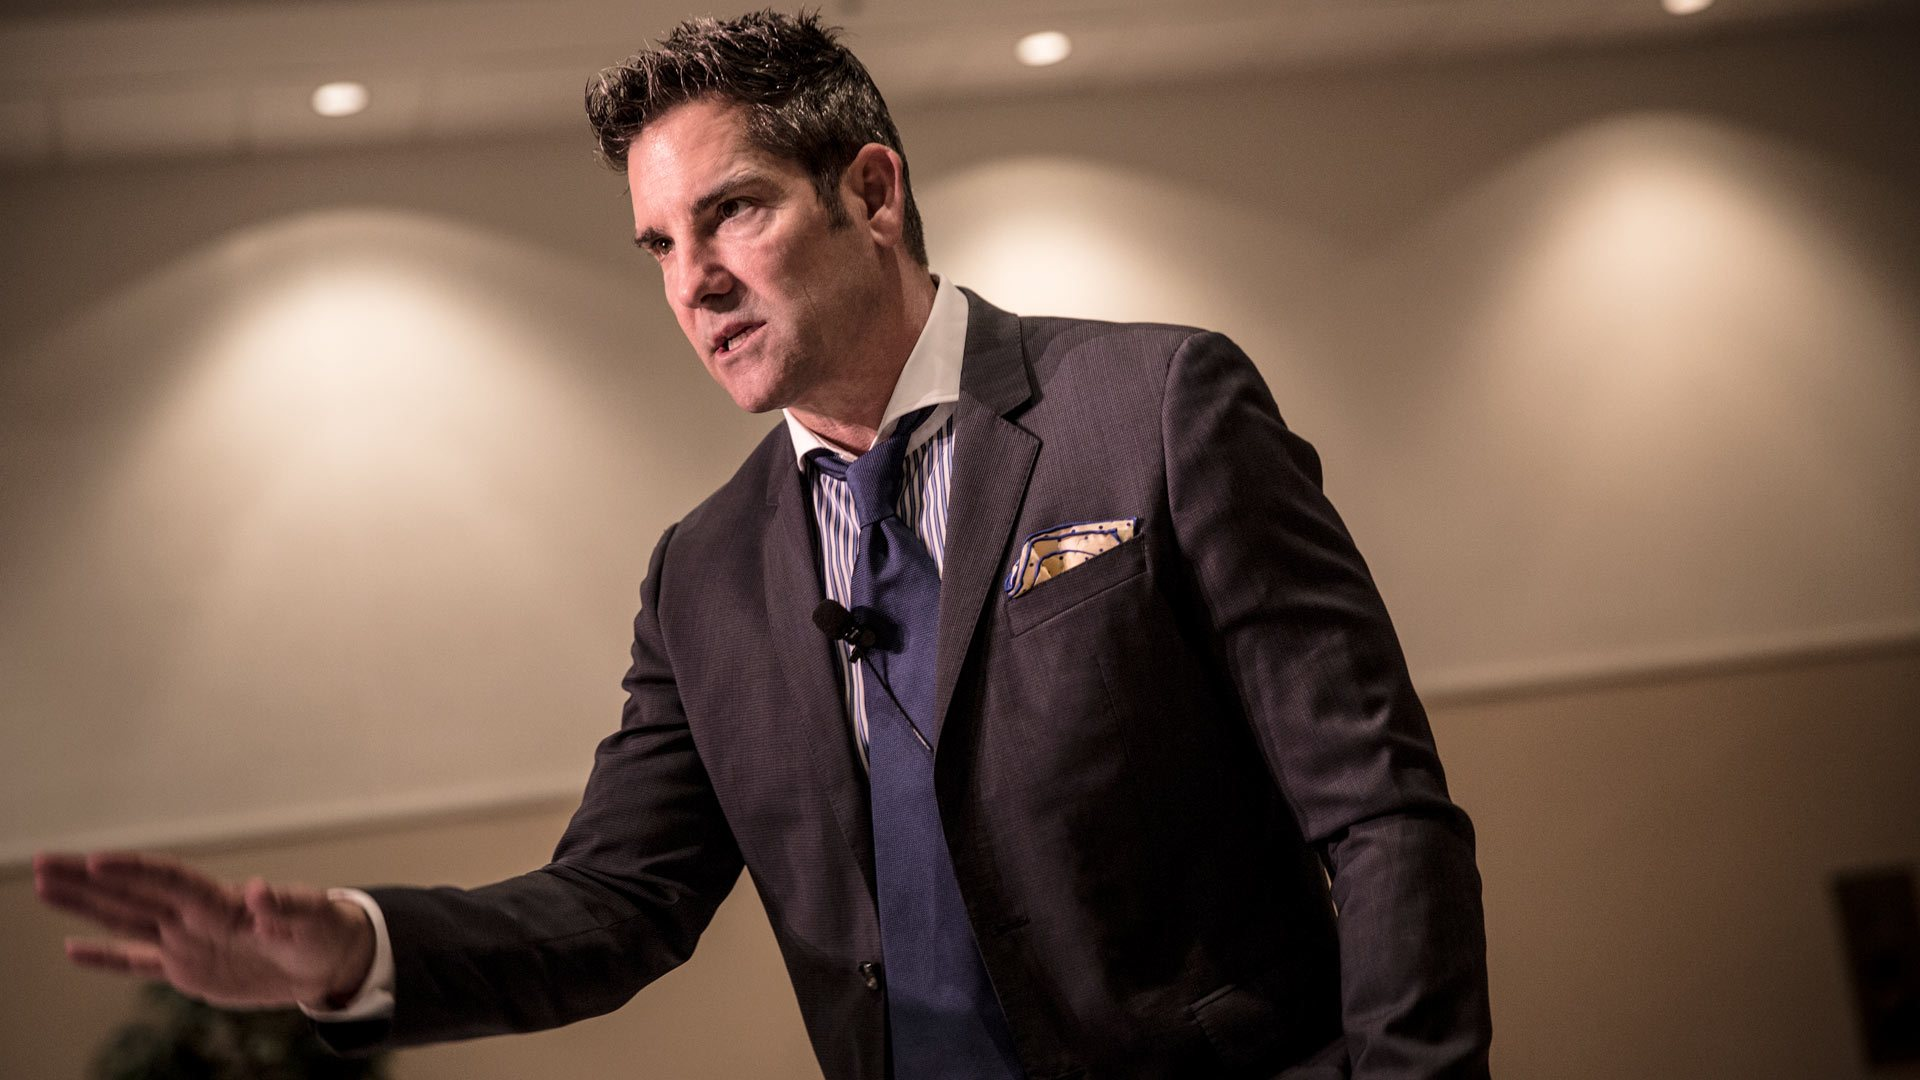 Grant Cardone's 7 Steps Of A Correct Business Cycle